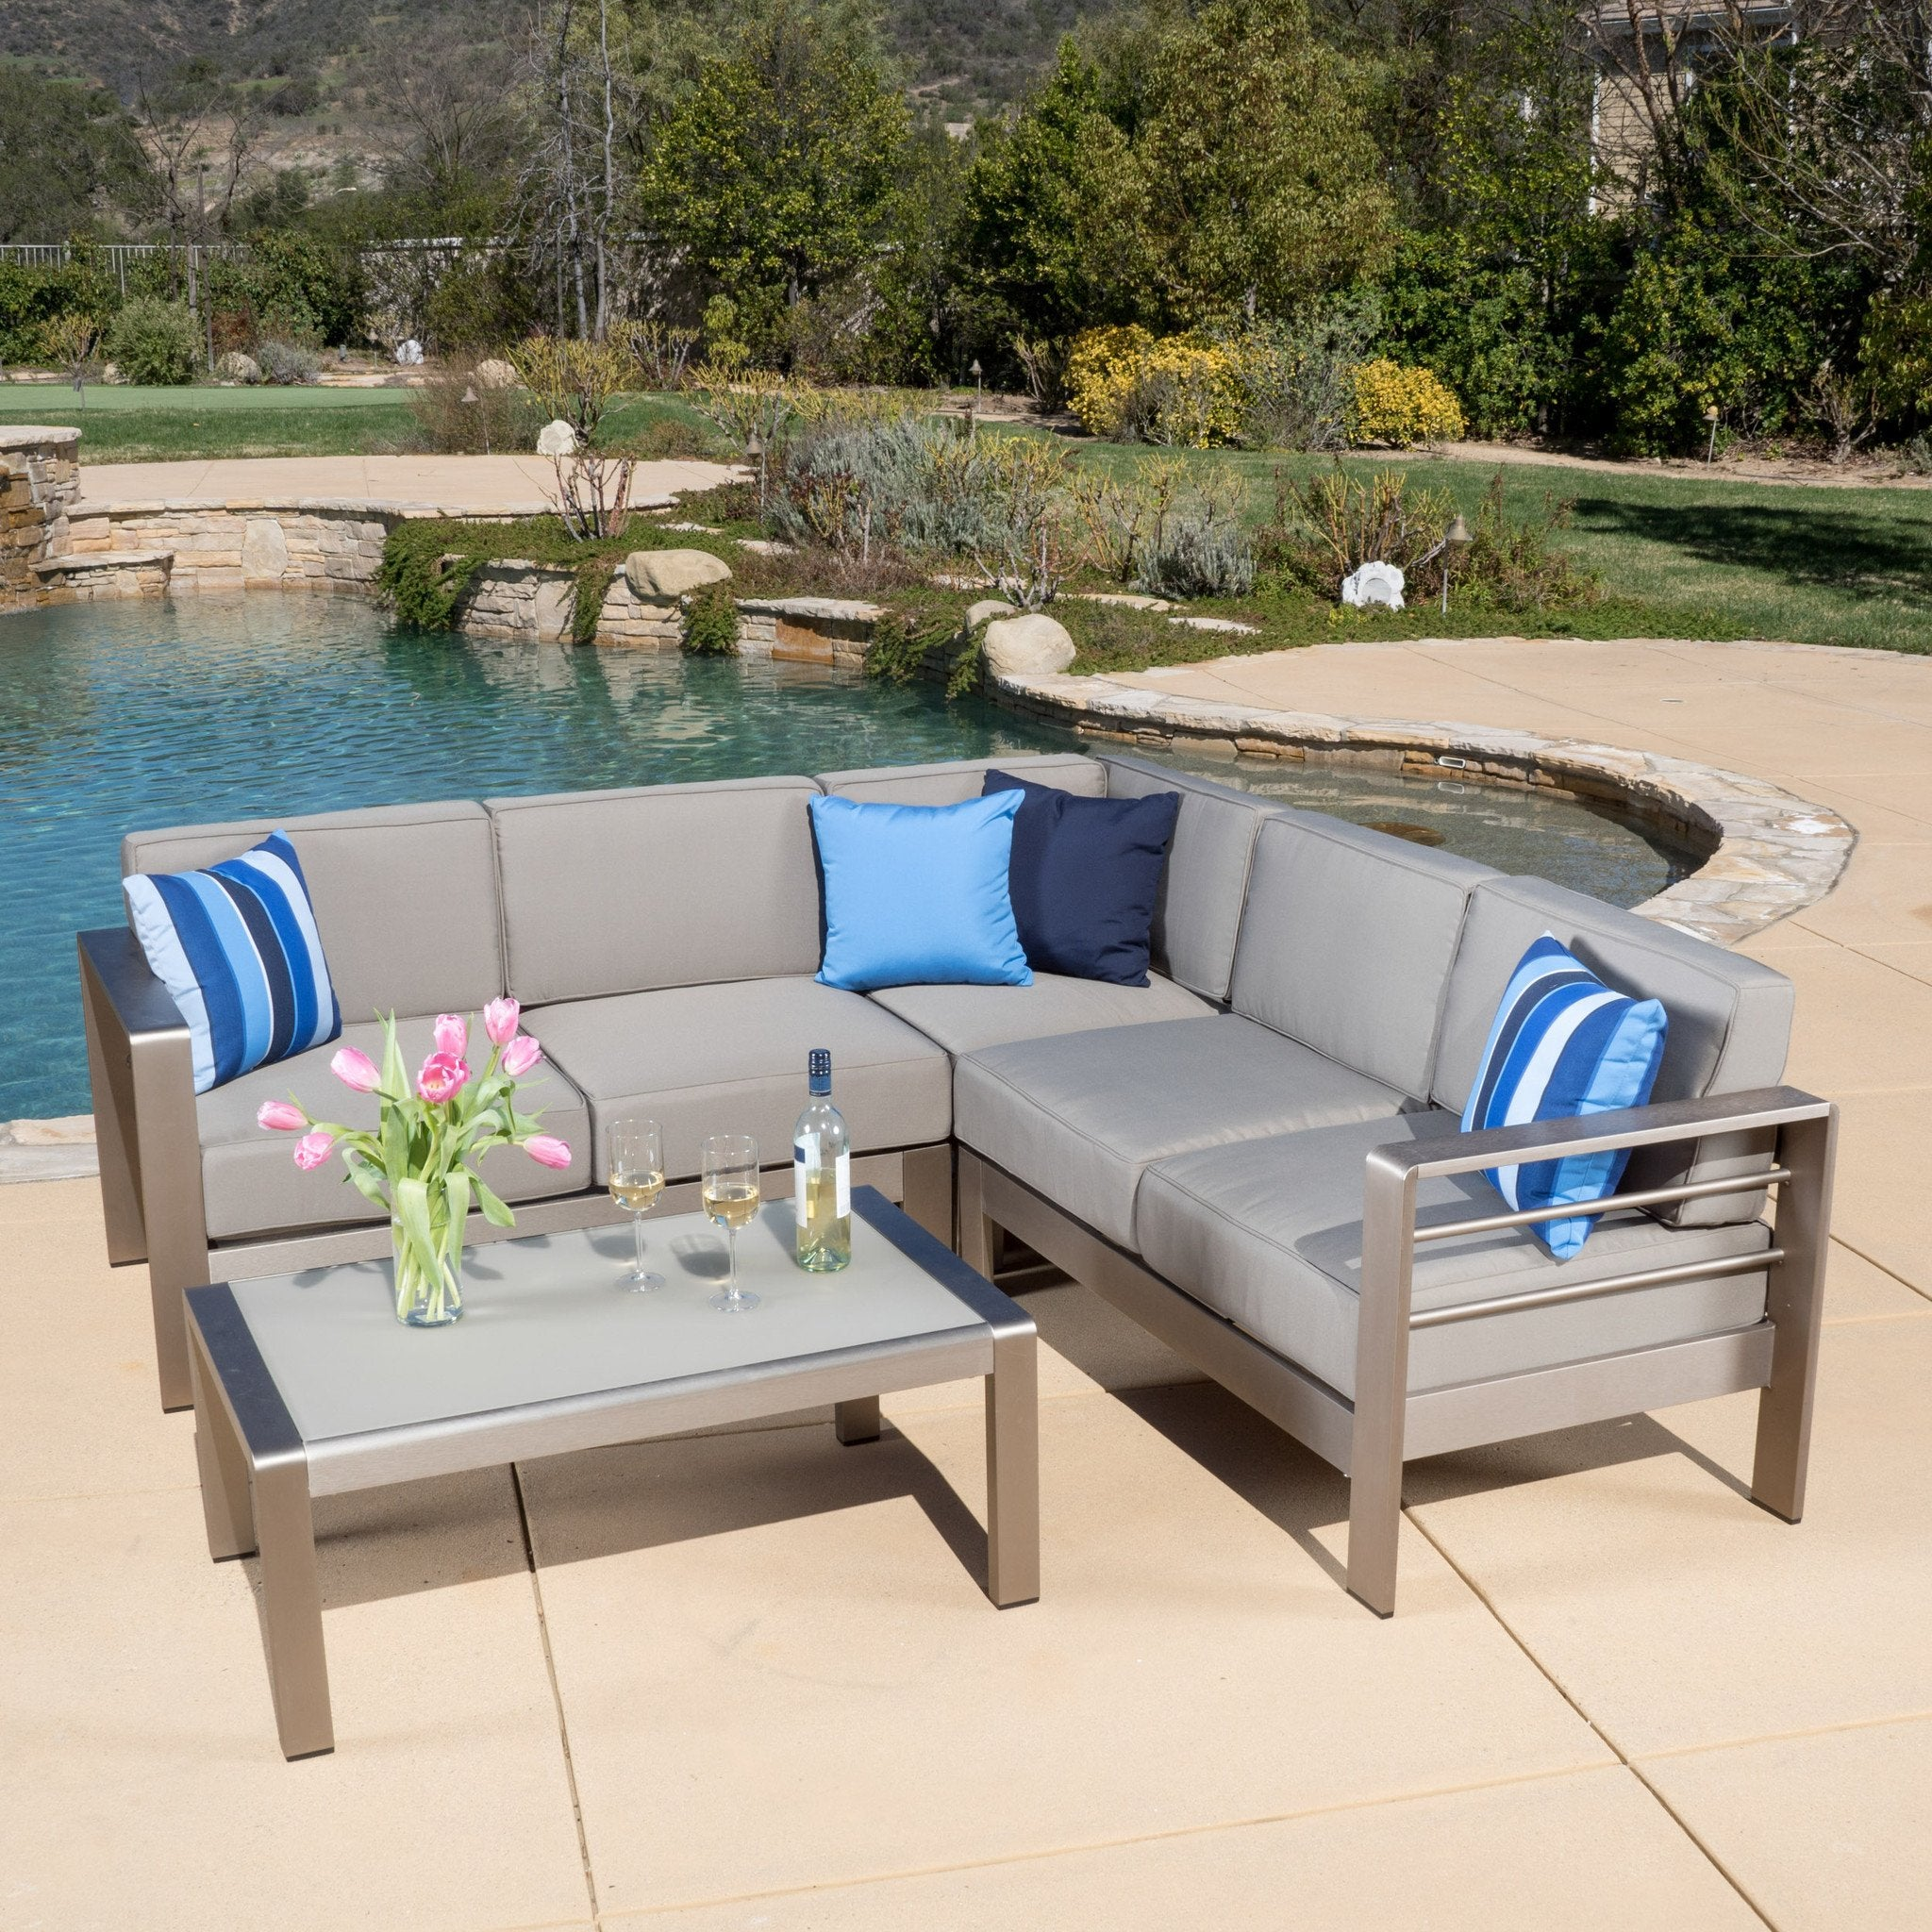 Sonora Outdoor Aluminum Sofa Set Cushions foto